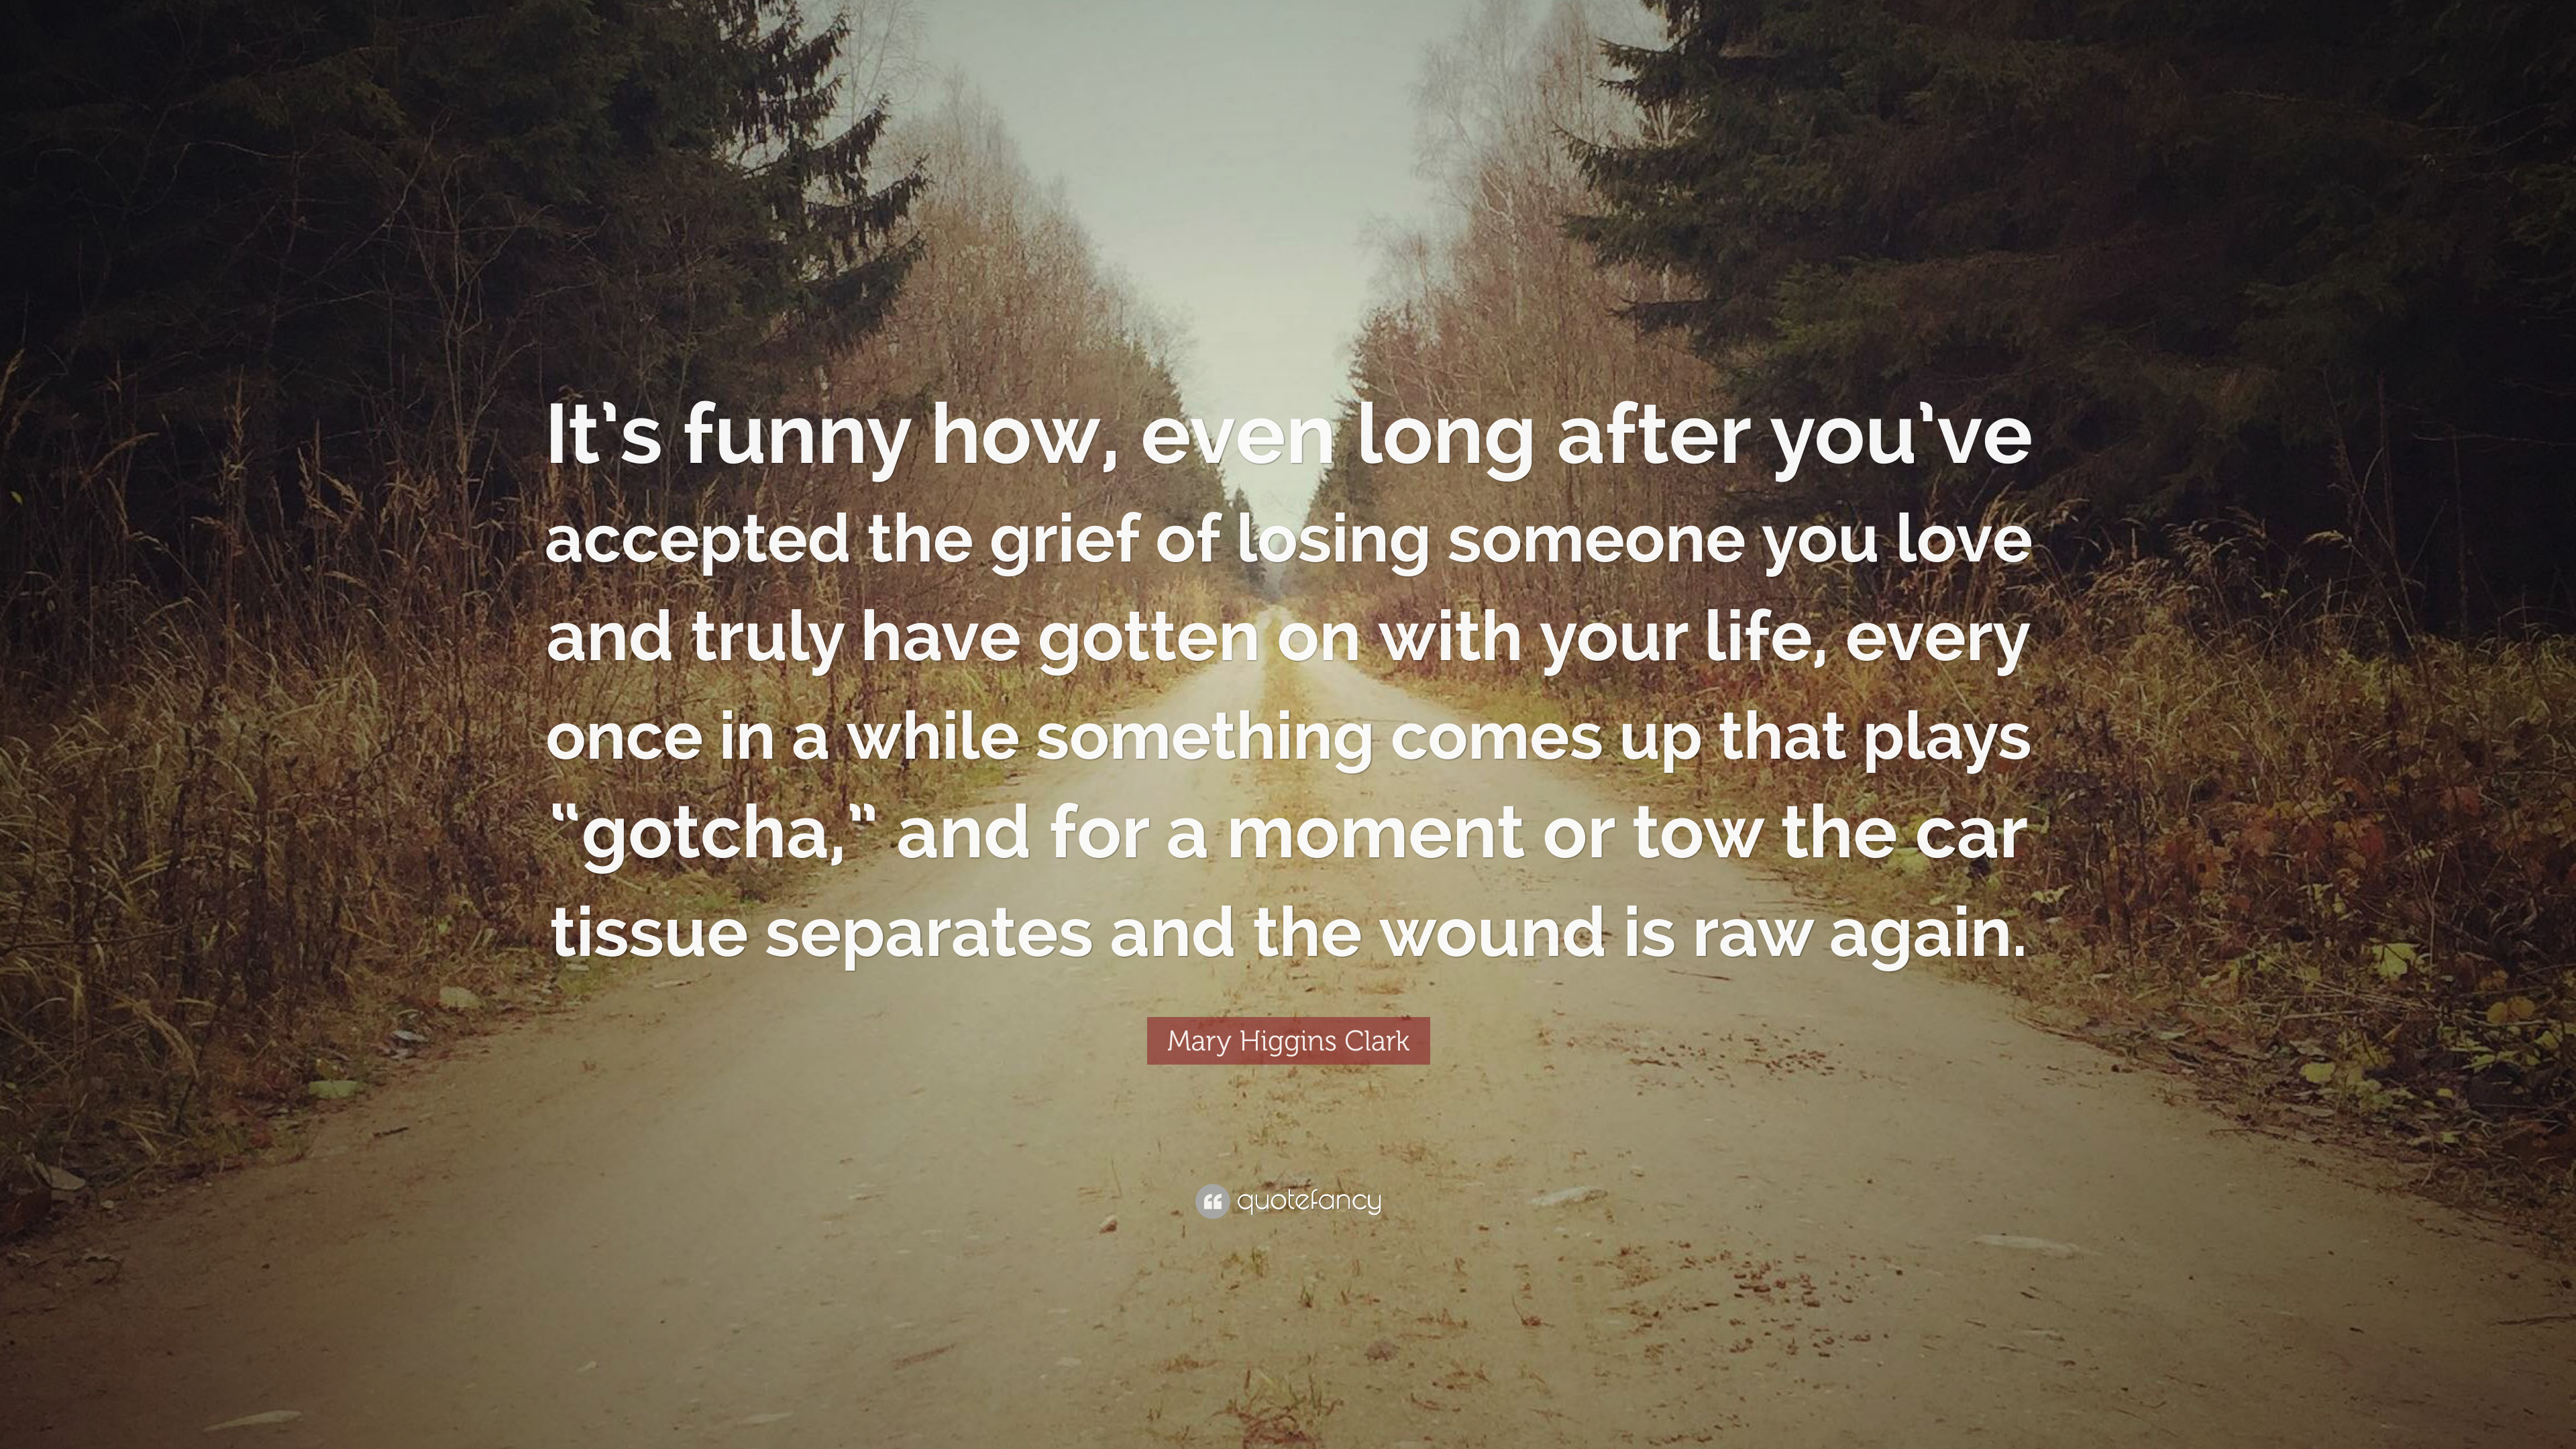 Mary Higgins Clark Quote It S Funny How Even Long After You Ve Accepted The Grief Of Losing